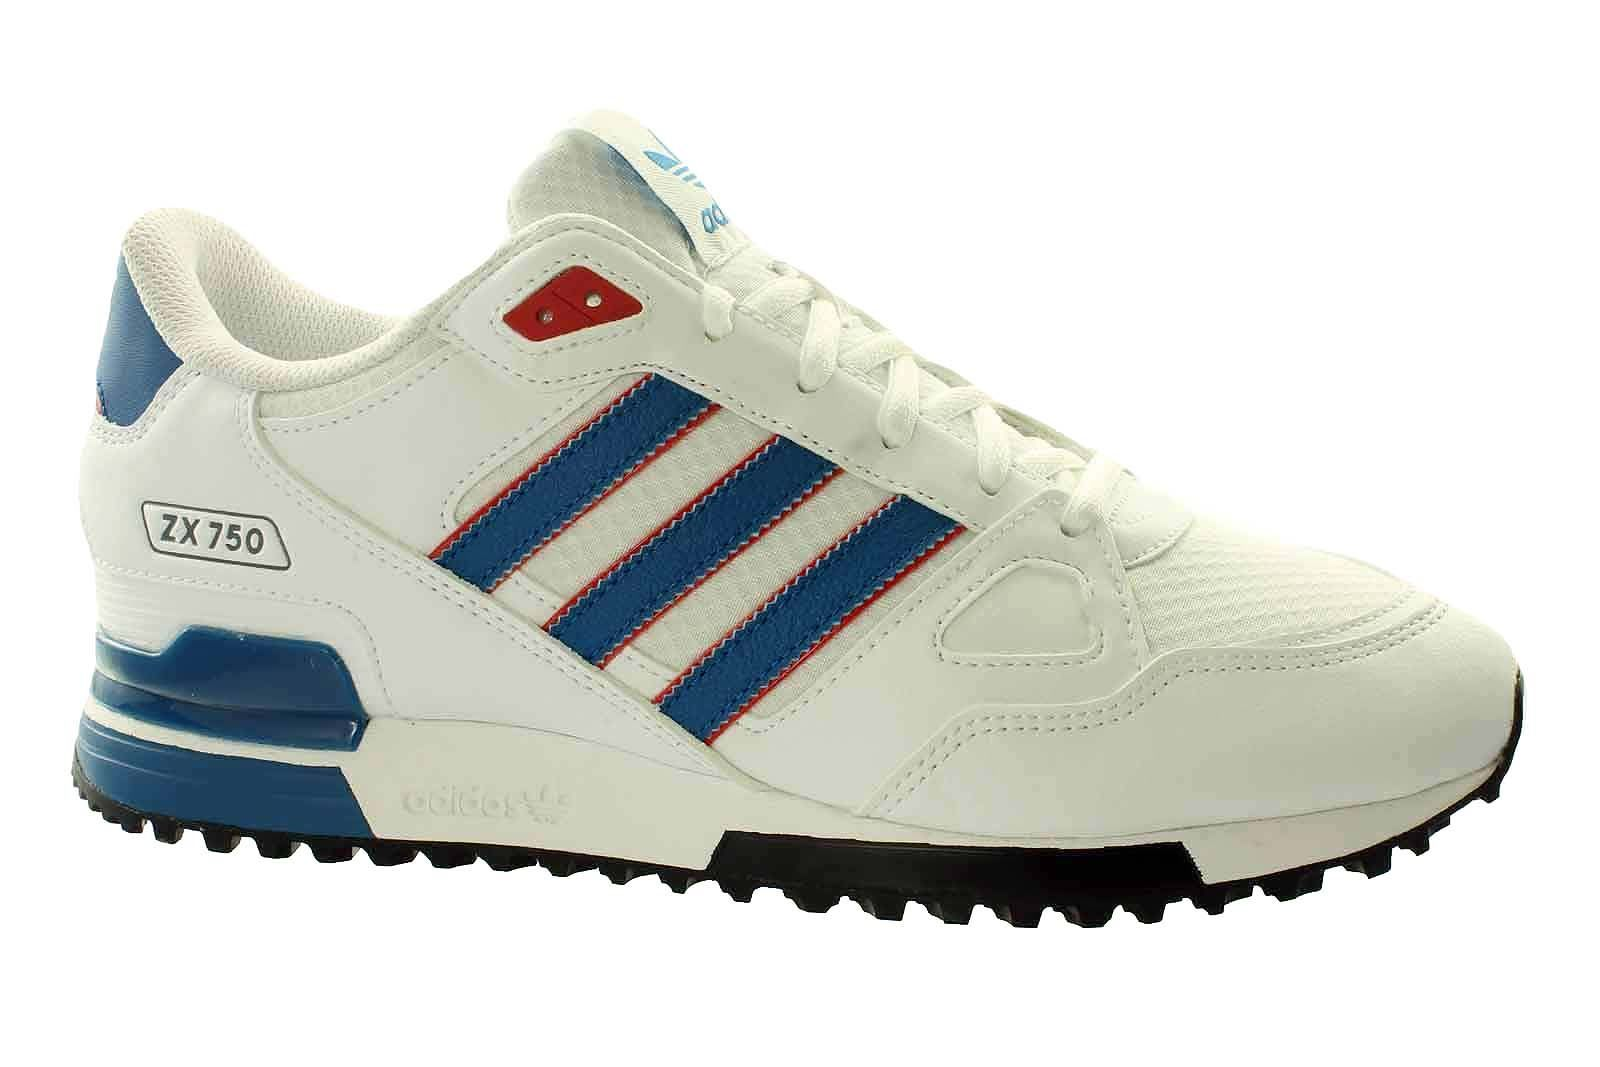 Details about ADIDAS ORIGINALS ZX 750 NEW MEN'S RUNNING ...